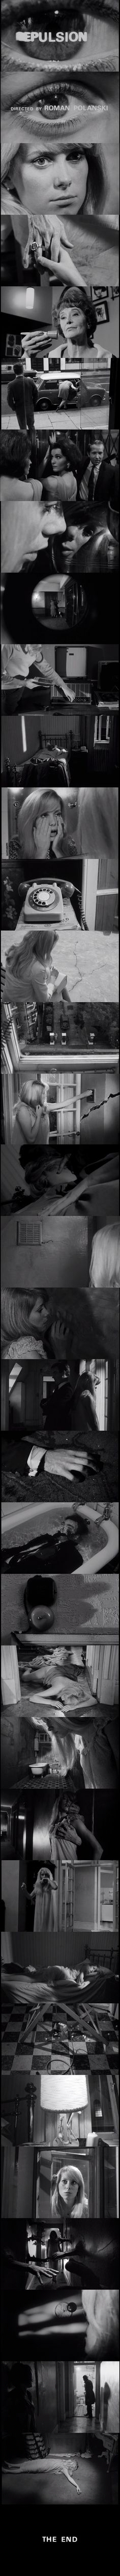 aesthetic Repulsion Directed by Roman Polanski. Cinematography by Gilbert Taylor. Repulsion Directed by Roman Polanski. Cinematography by Gilbert Taylor. Groove Movie, Badass Movie, Film Icon, Roman Polanski, Film Stills, Series Movies, Movies Showing, Film Photography, Artwork